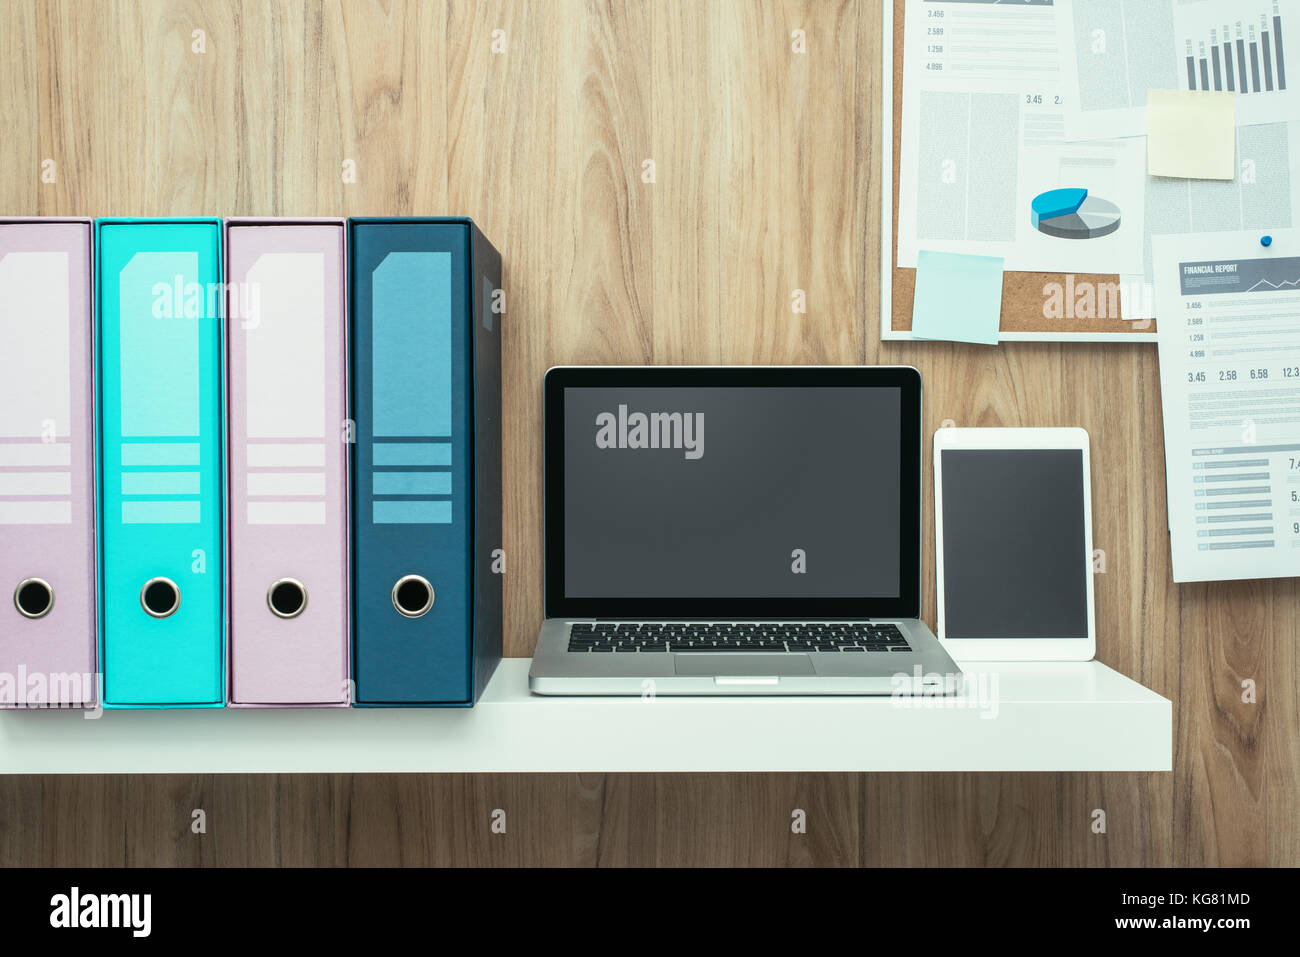 office pinboard. office pinboard. laptop and folders on a shelf in the office, pinboard background,